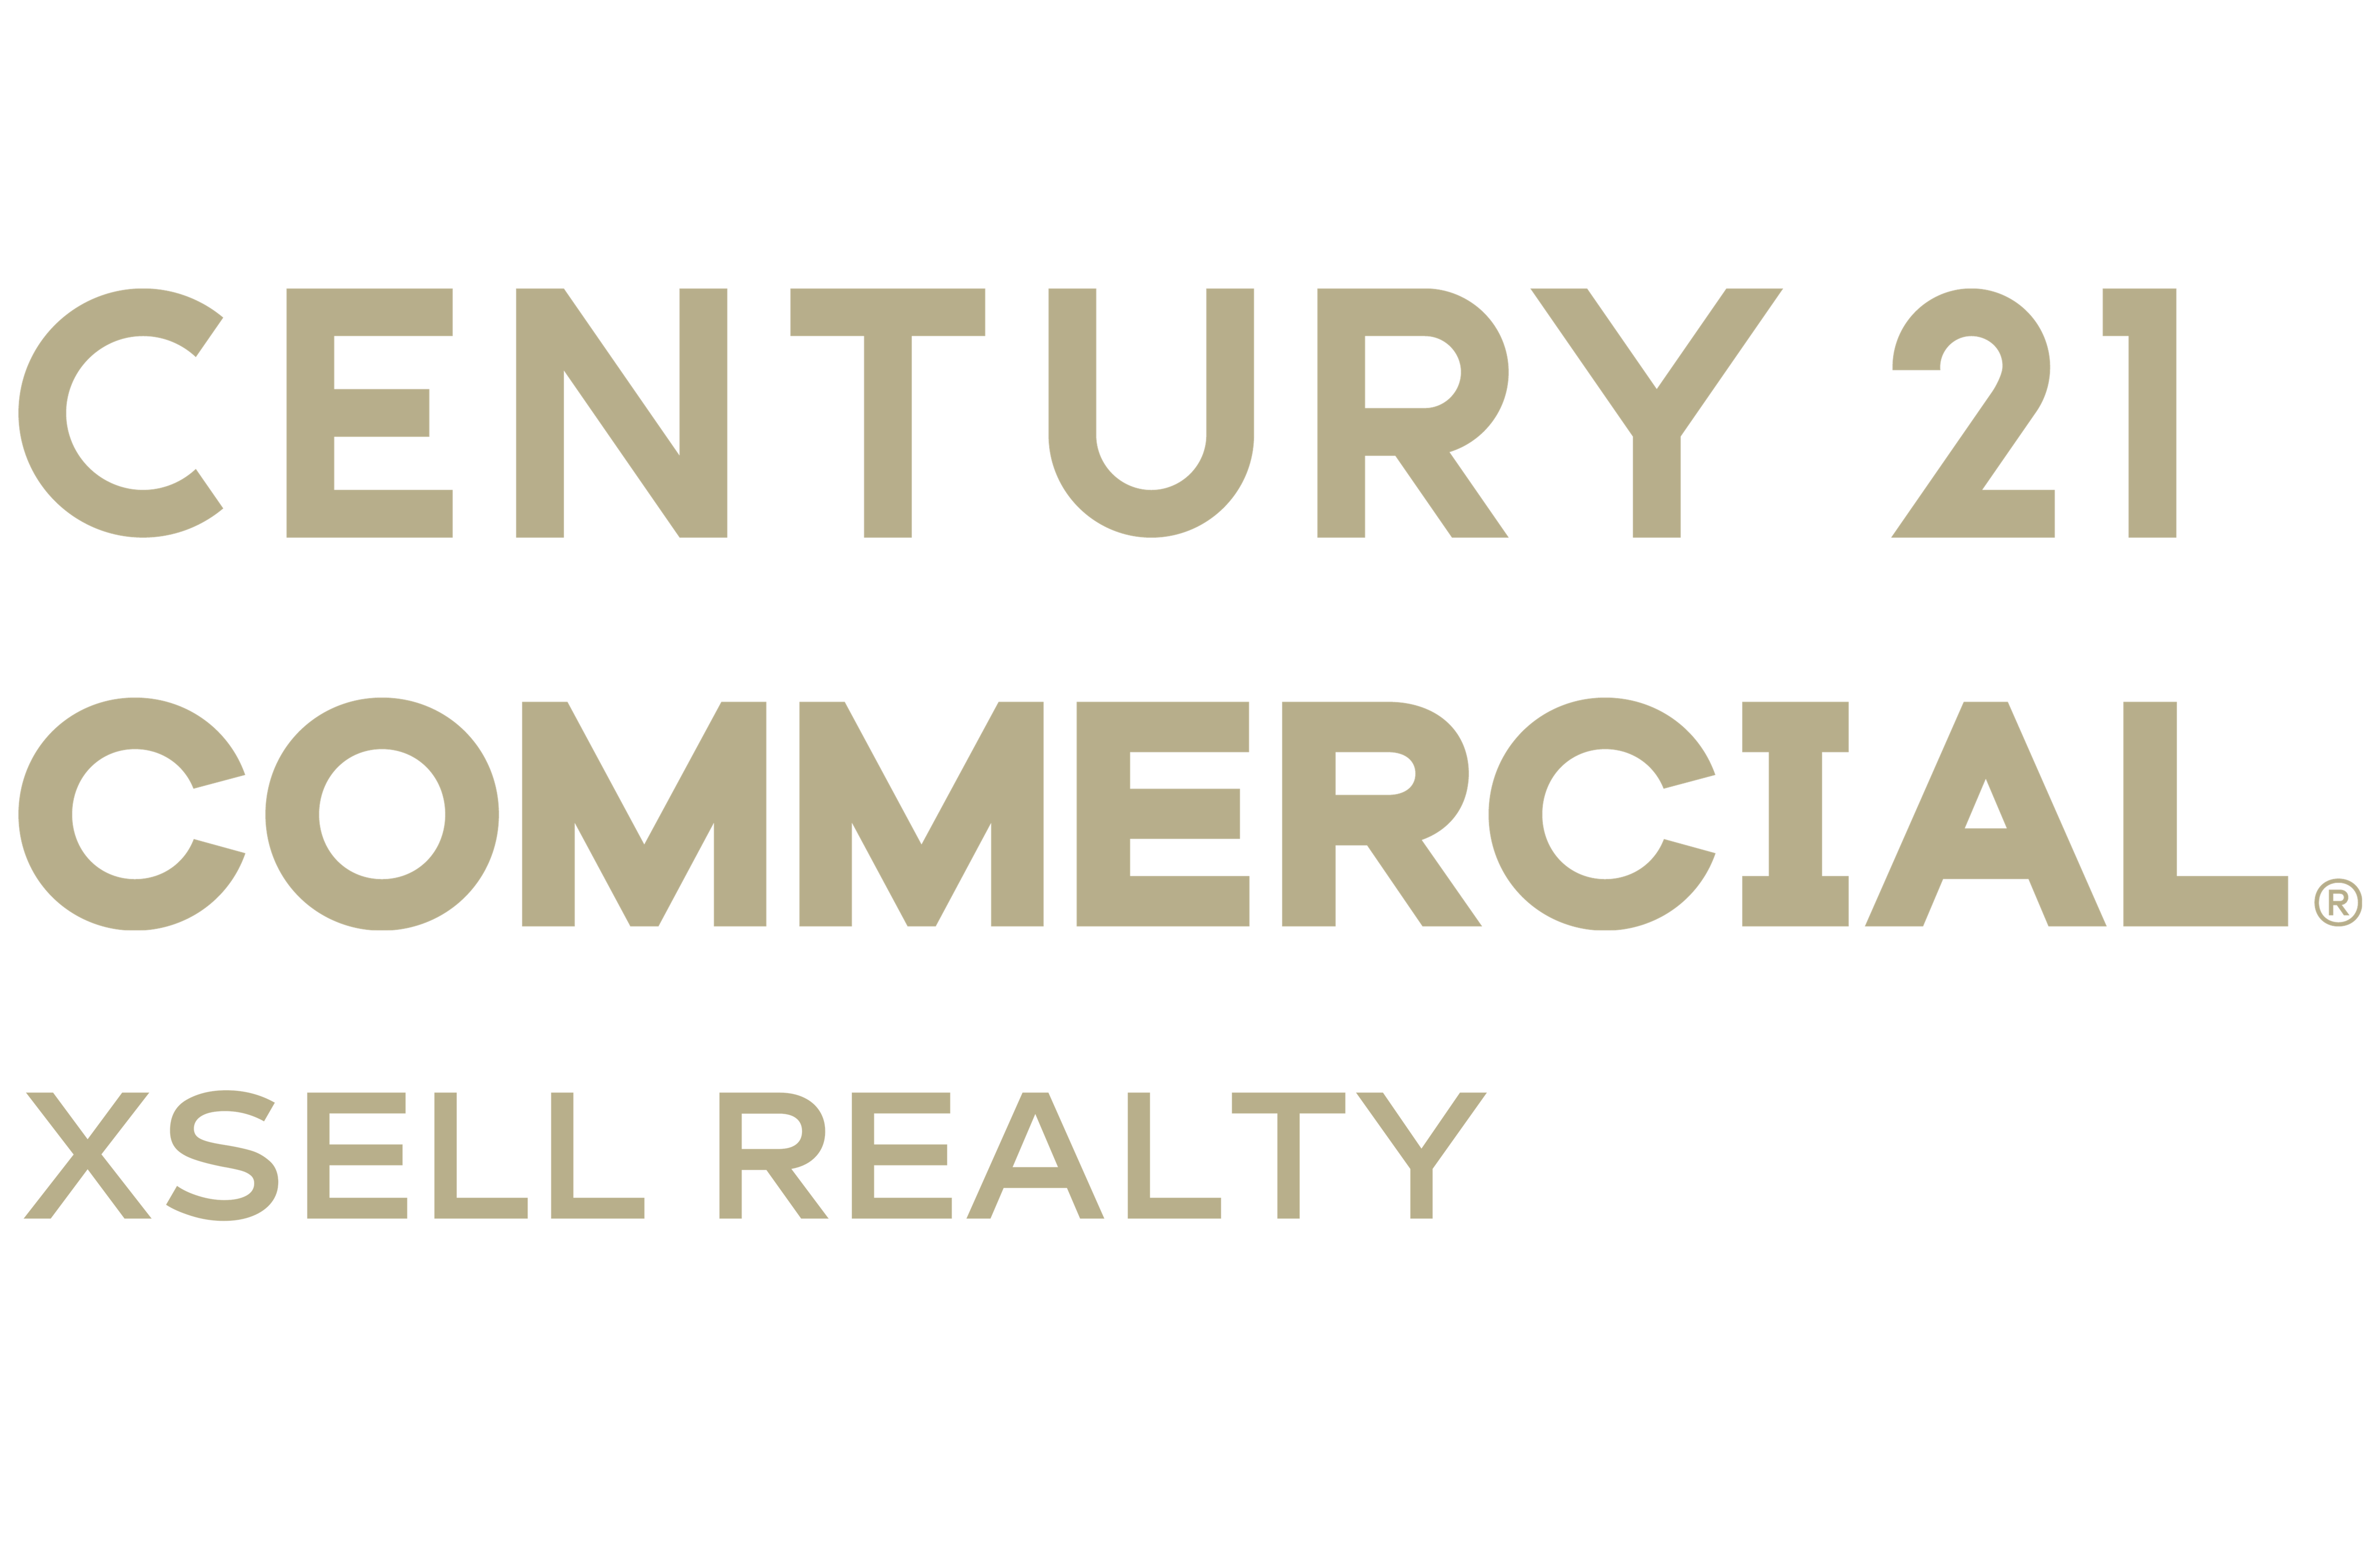 Jammie Geddis of CENTURY 21 XSELL REALTY logo